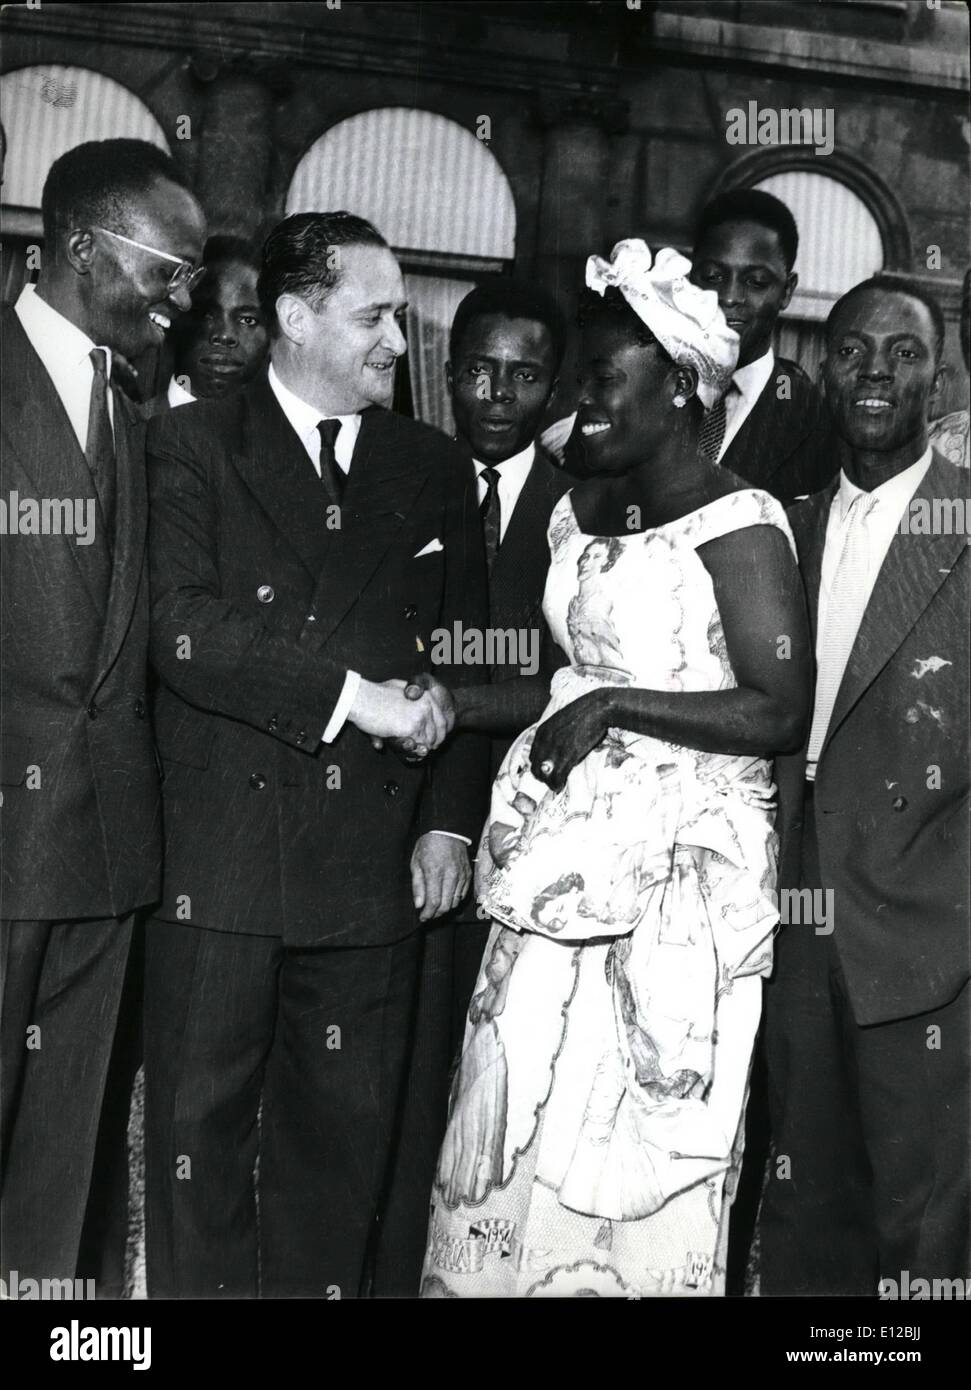 Dec. 09, 2011 - Black Chiefs at Elysee Palace. The Black Chiefs who are attending the Bastille Day celebrations were received by President Coty today. OPS: M. Bourges Maunoury, Prime Minister , Chatting with MME Anne Marie Bassam, from Ivory Coast town council. July 13/57 - Stock Image